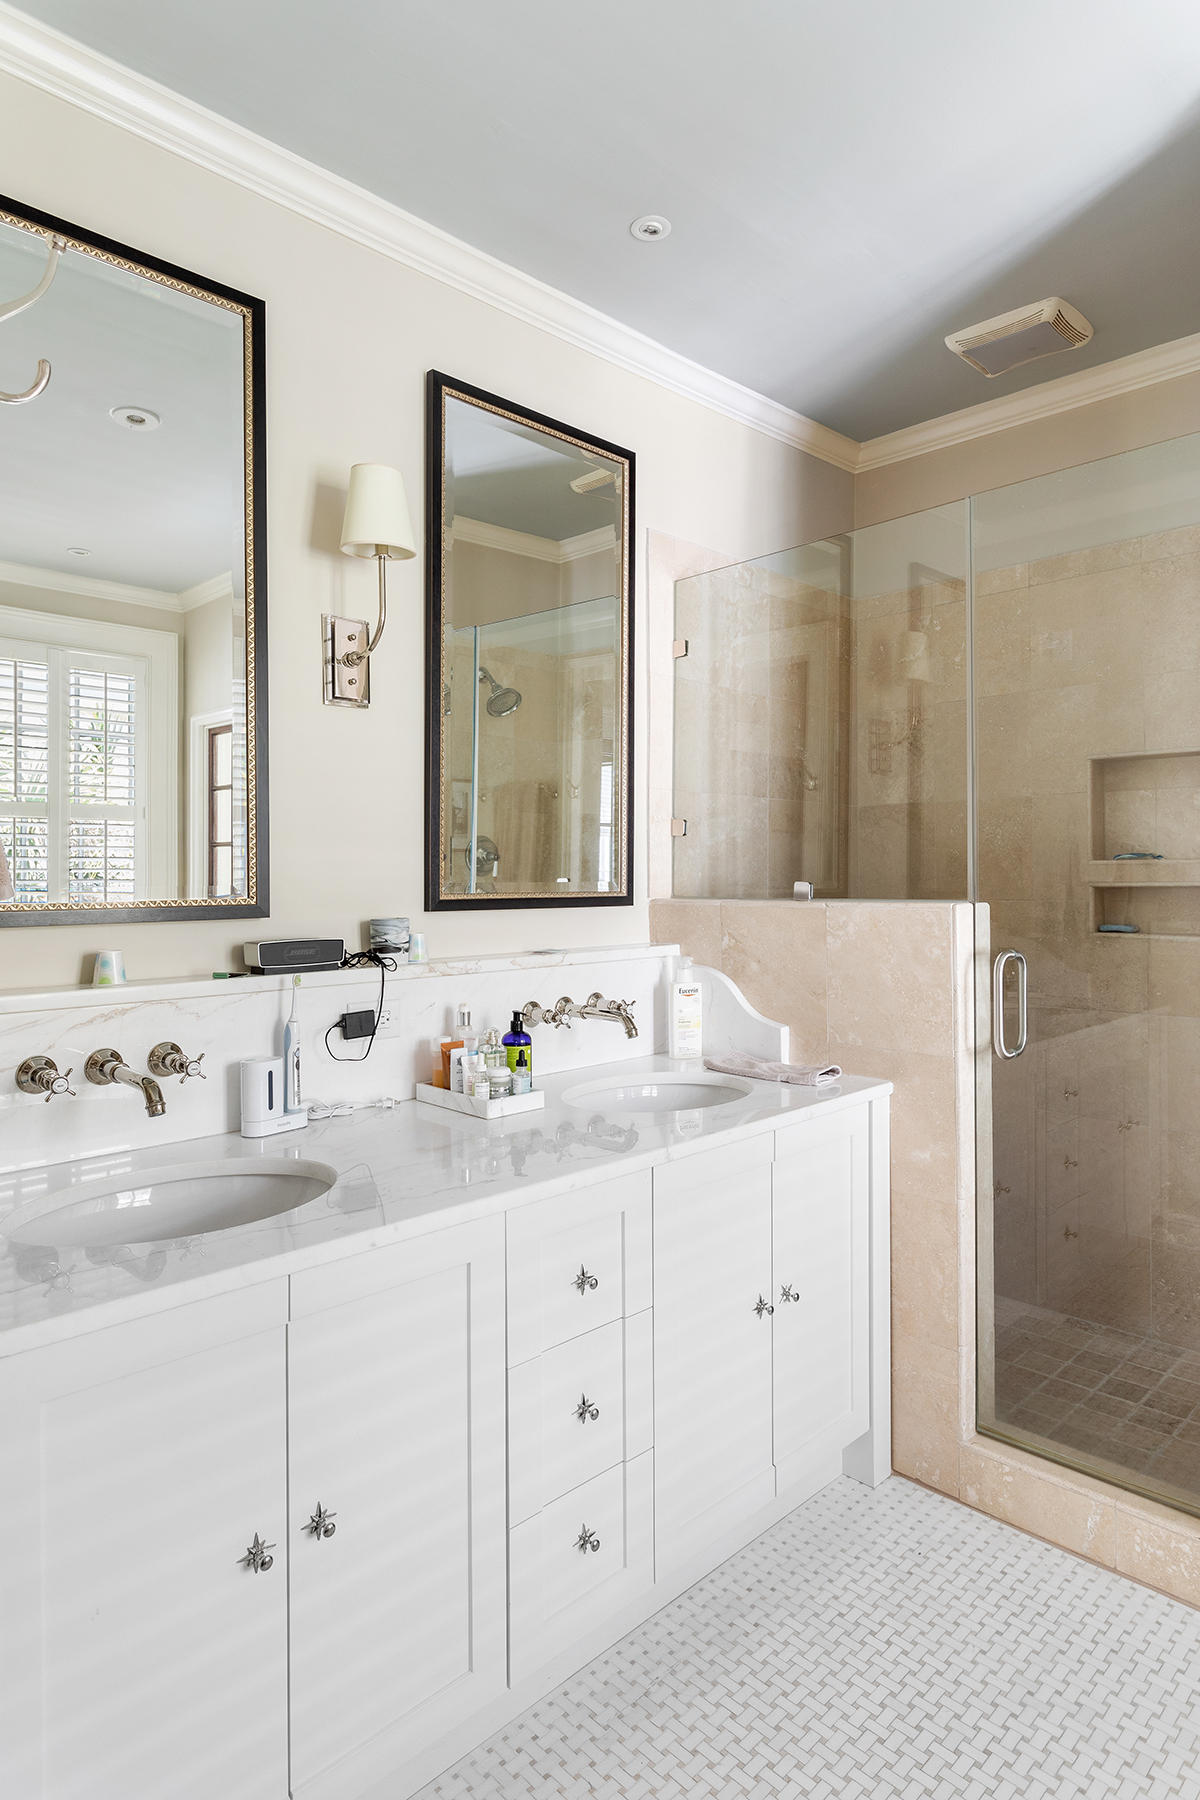 South of Broad Homes For Sale - 3 Atlantic, Charleston, SC - 7